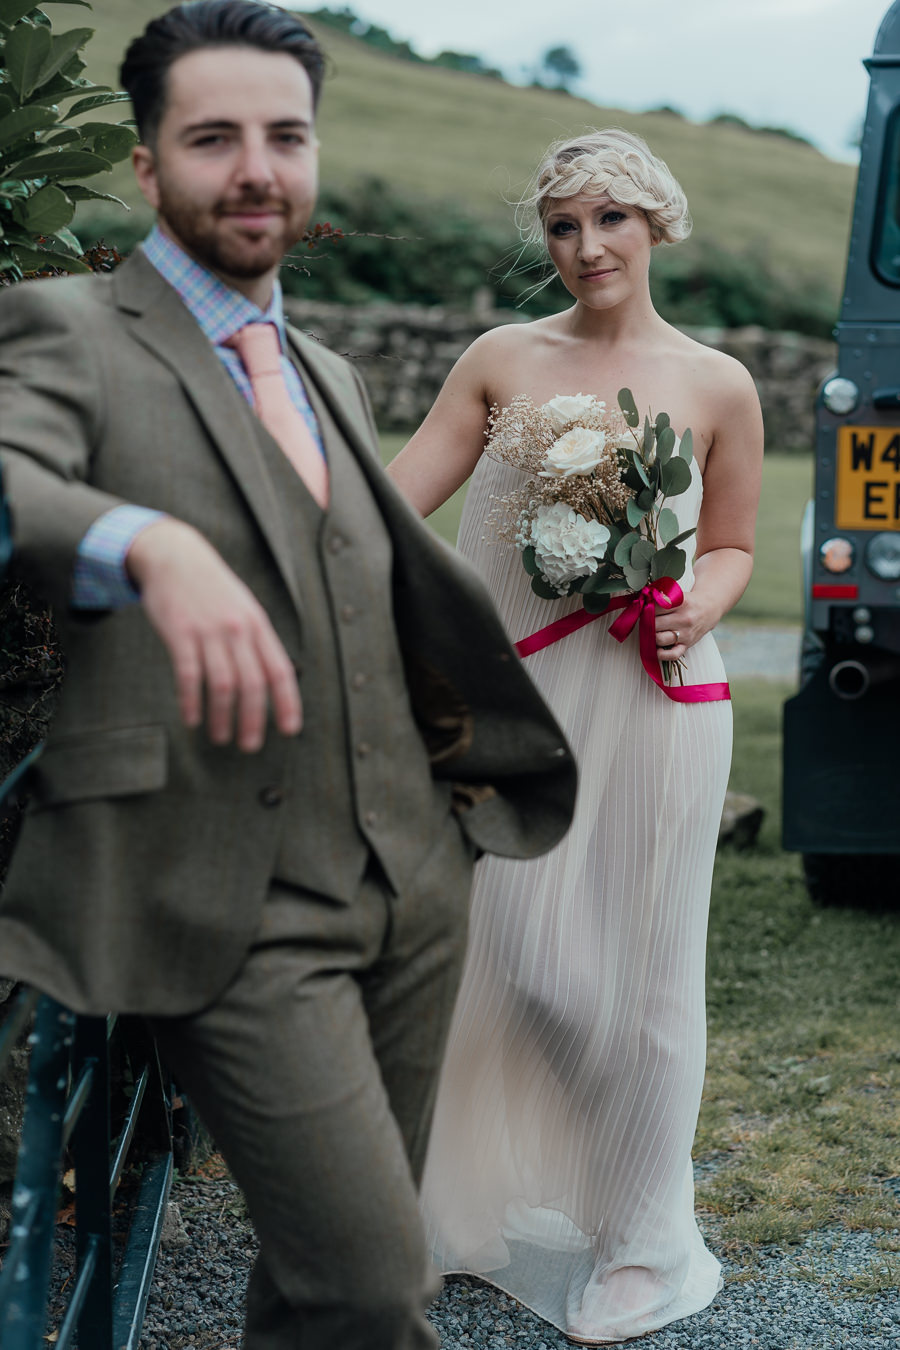 Rural English wedding style at Danby Castle, photo credit Rosanna Lilly Photography (14)